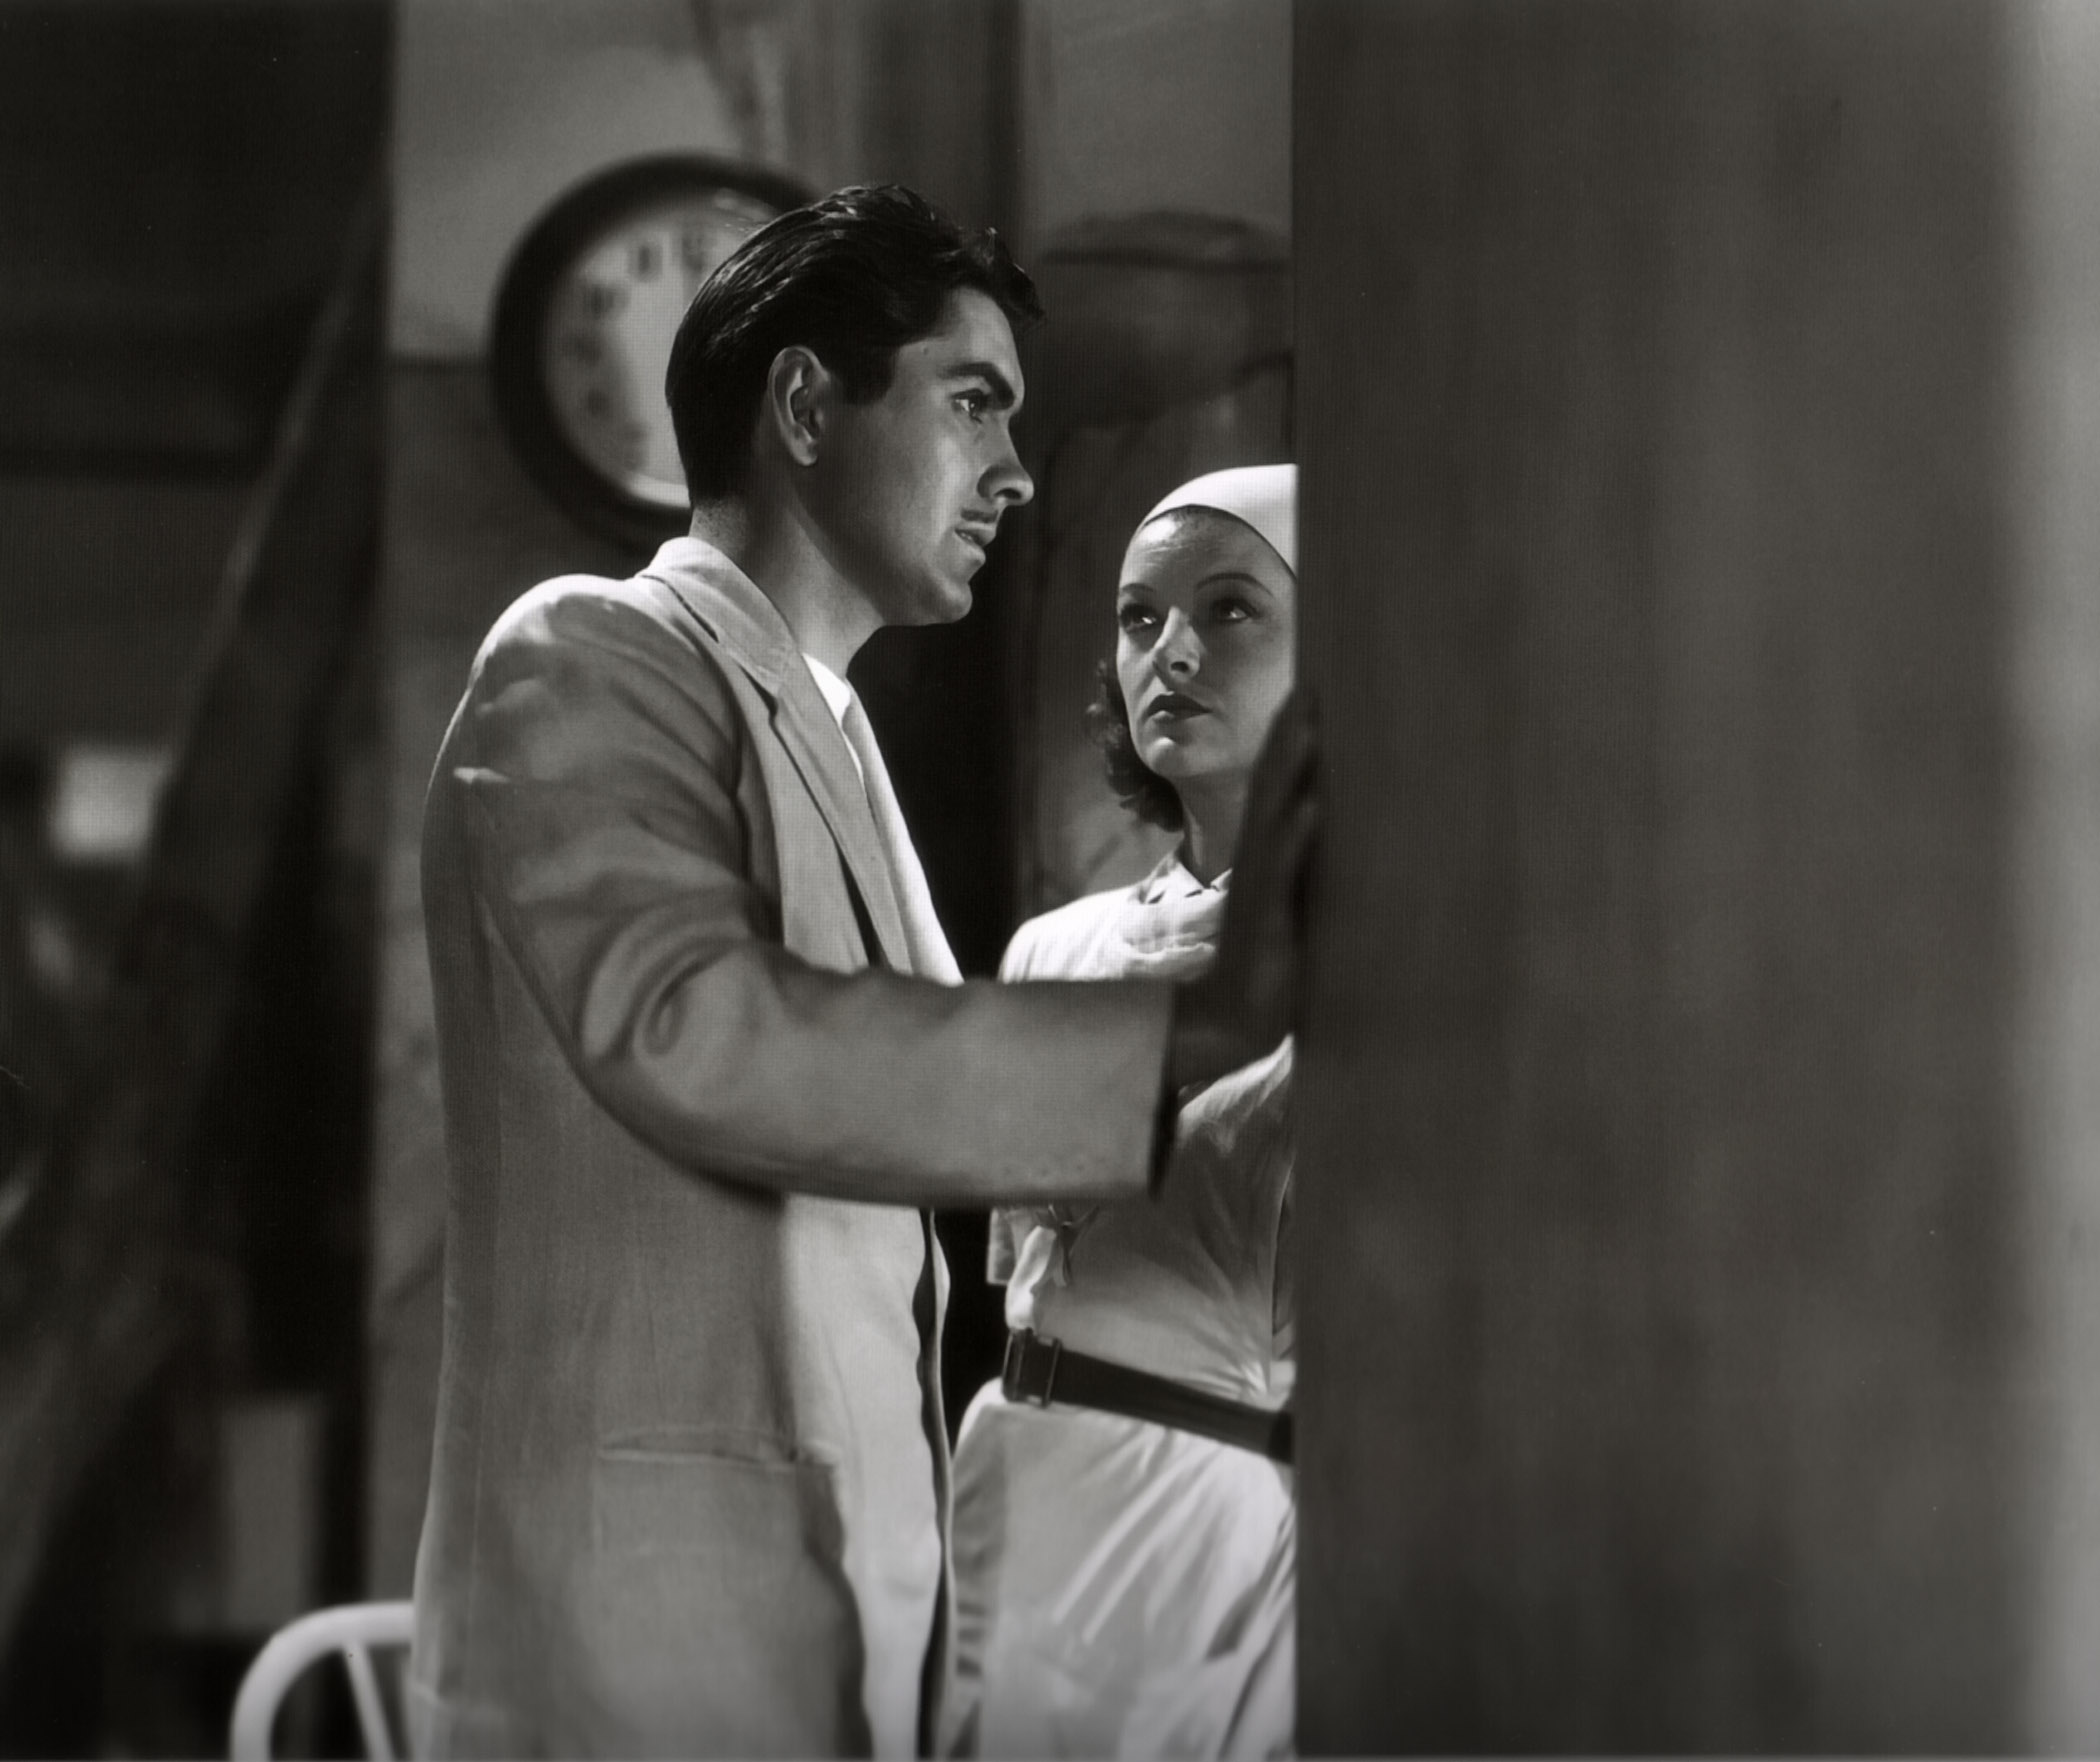 Tyrone Power, Jr. in The Rains Came With Myrna Loy